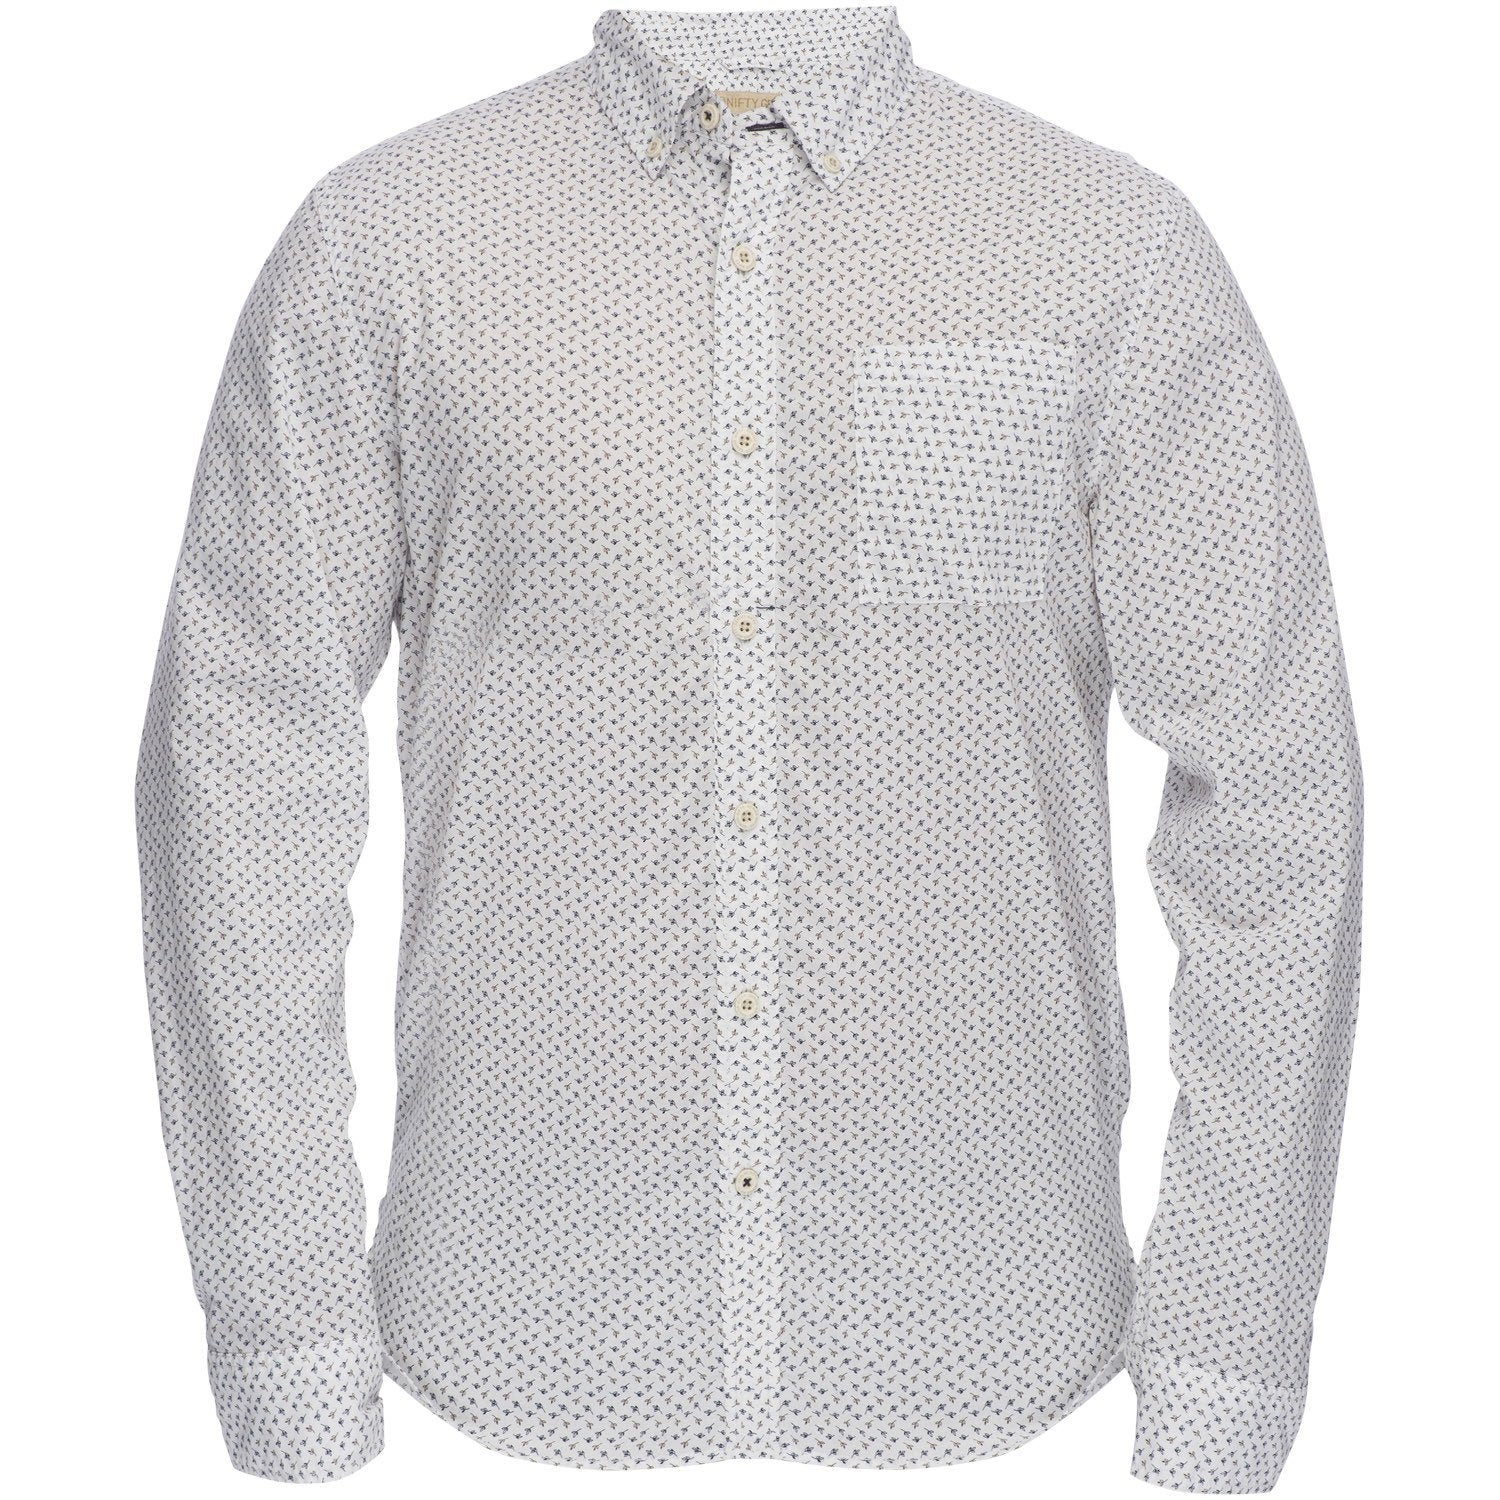 Truman Button Collar in White/Brown/Blue Print